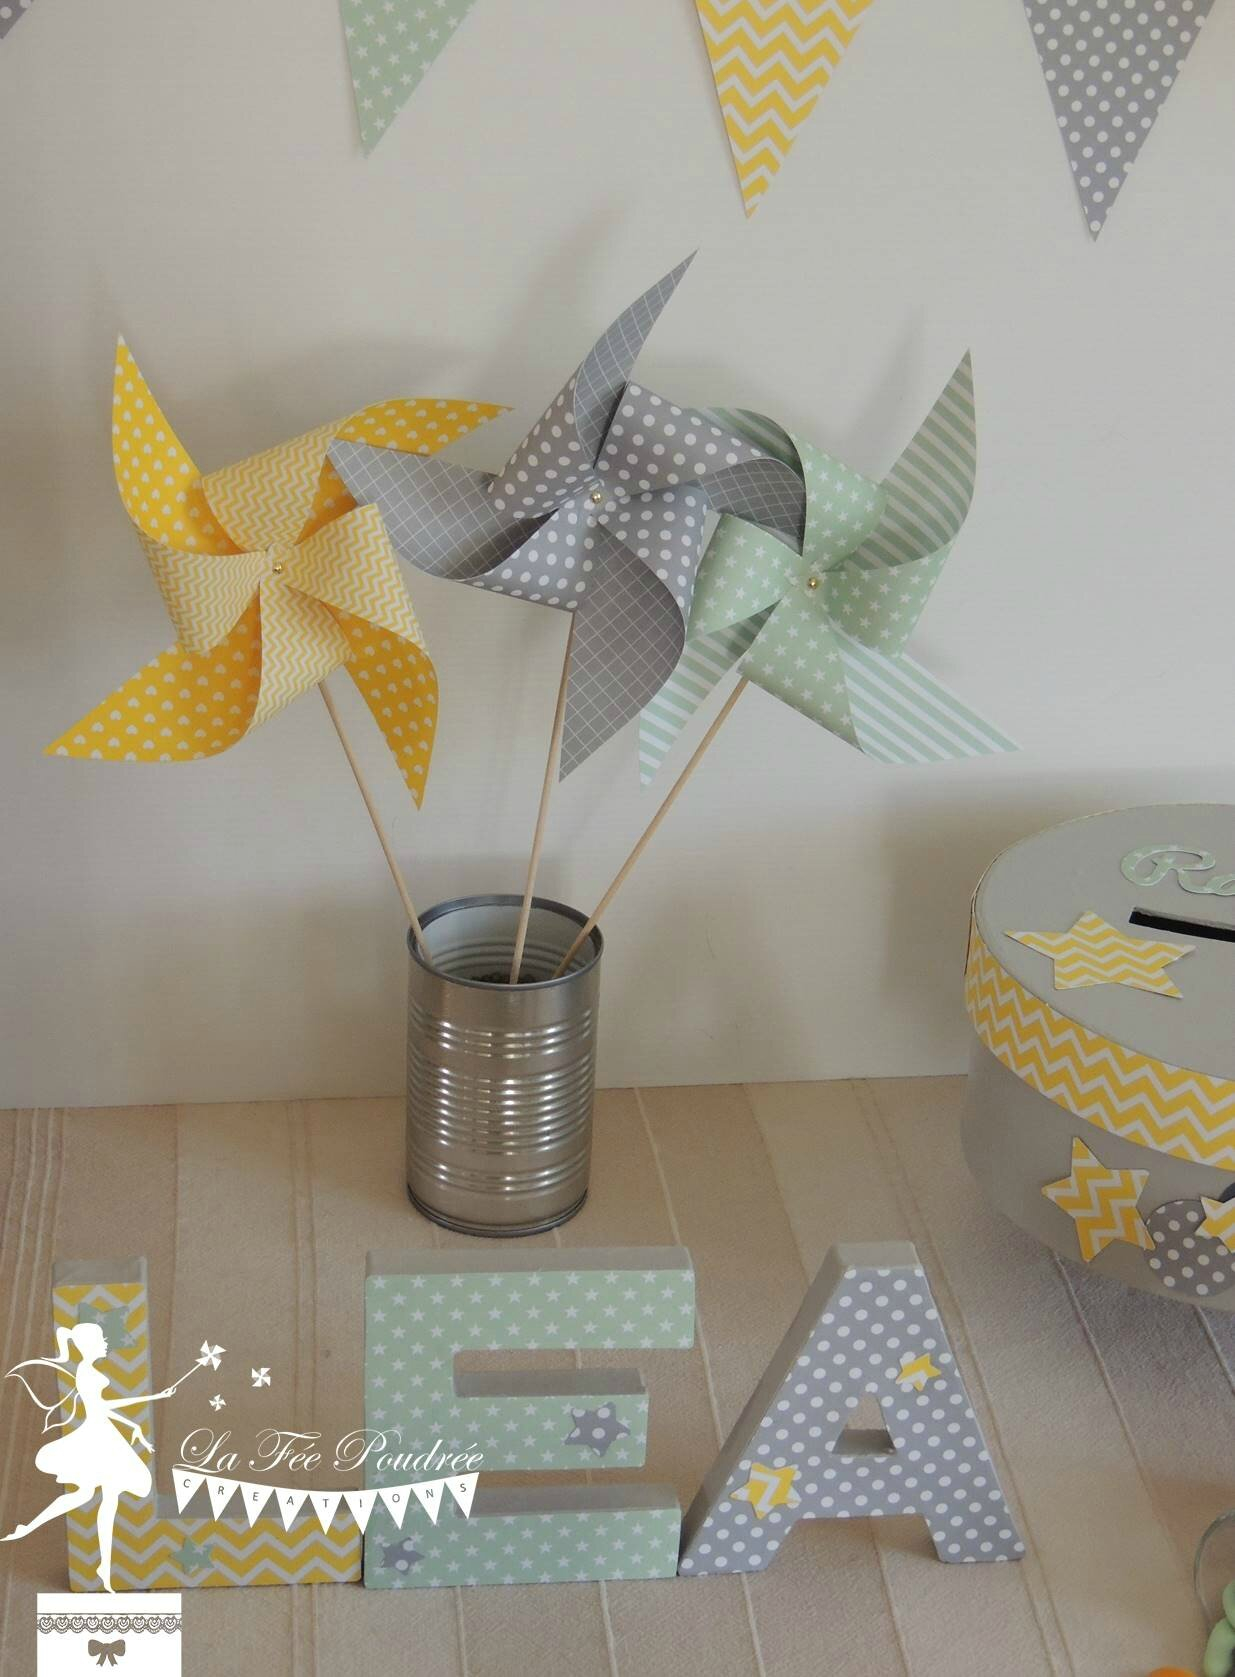 decoration bapteme baby shower theme etoile moulin lettre decoree moulin urne fanion